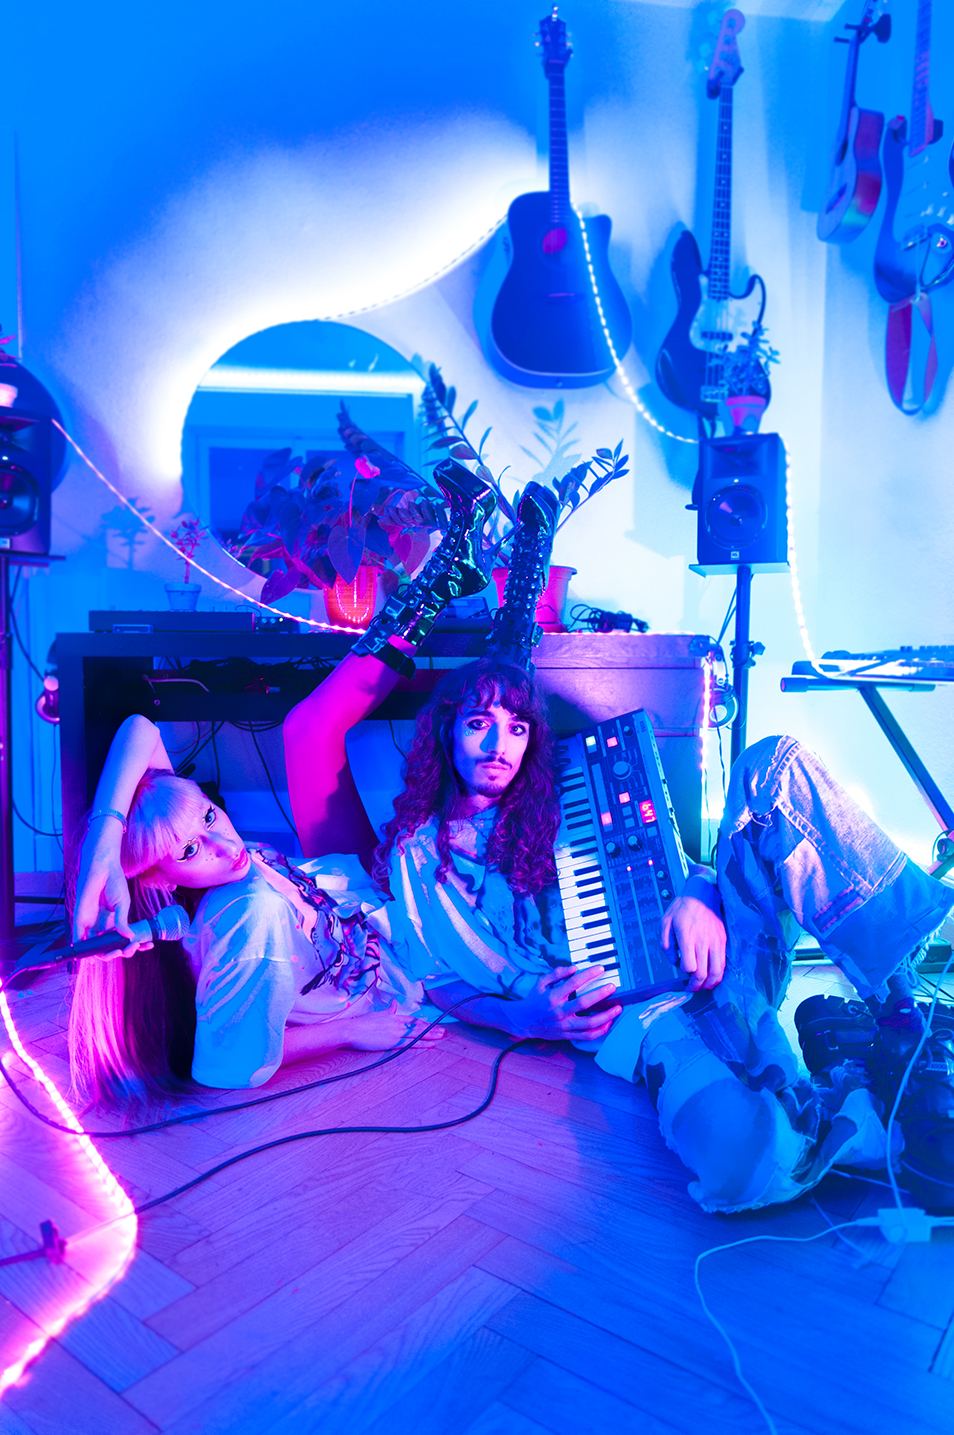 Portrait of TBC duo in their music homestudio in blue light